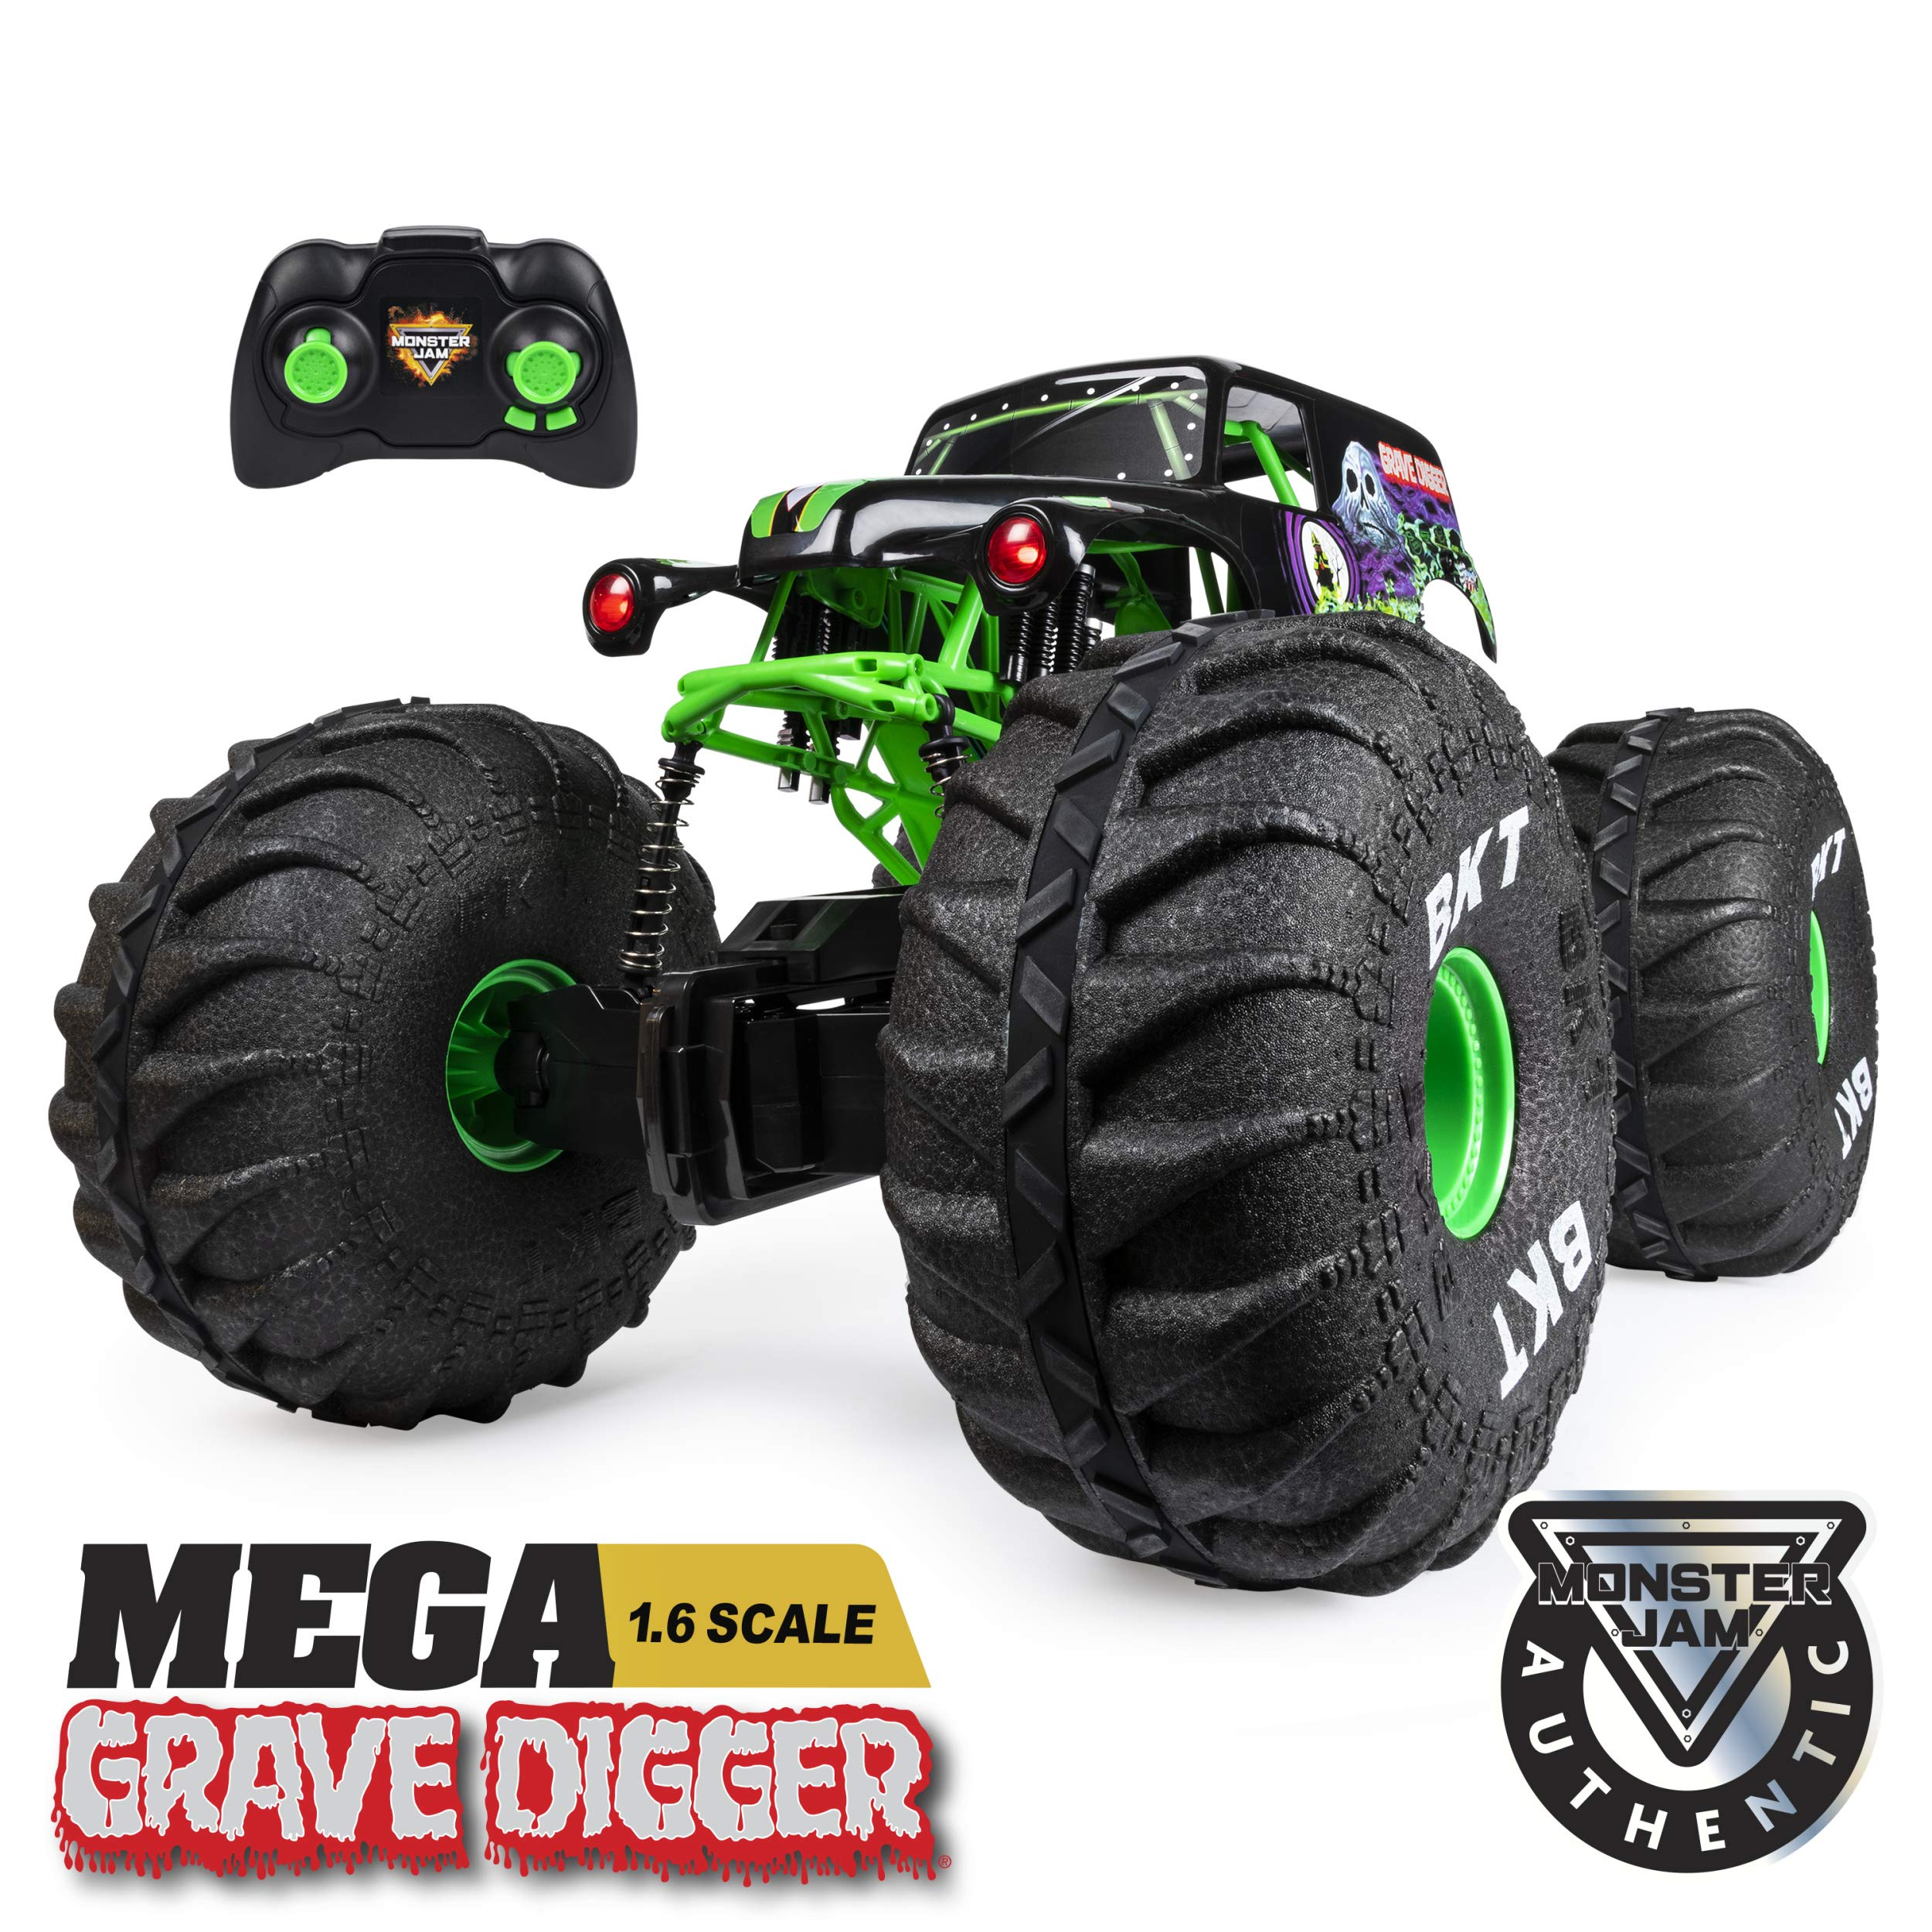 Monster Jam, Official Mega Grave Digger All-Terrain Remote Control Monster Truck with Lights, 1: 6 Scale by Monster Jam (Image #1)